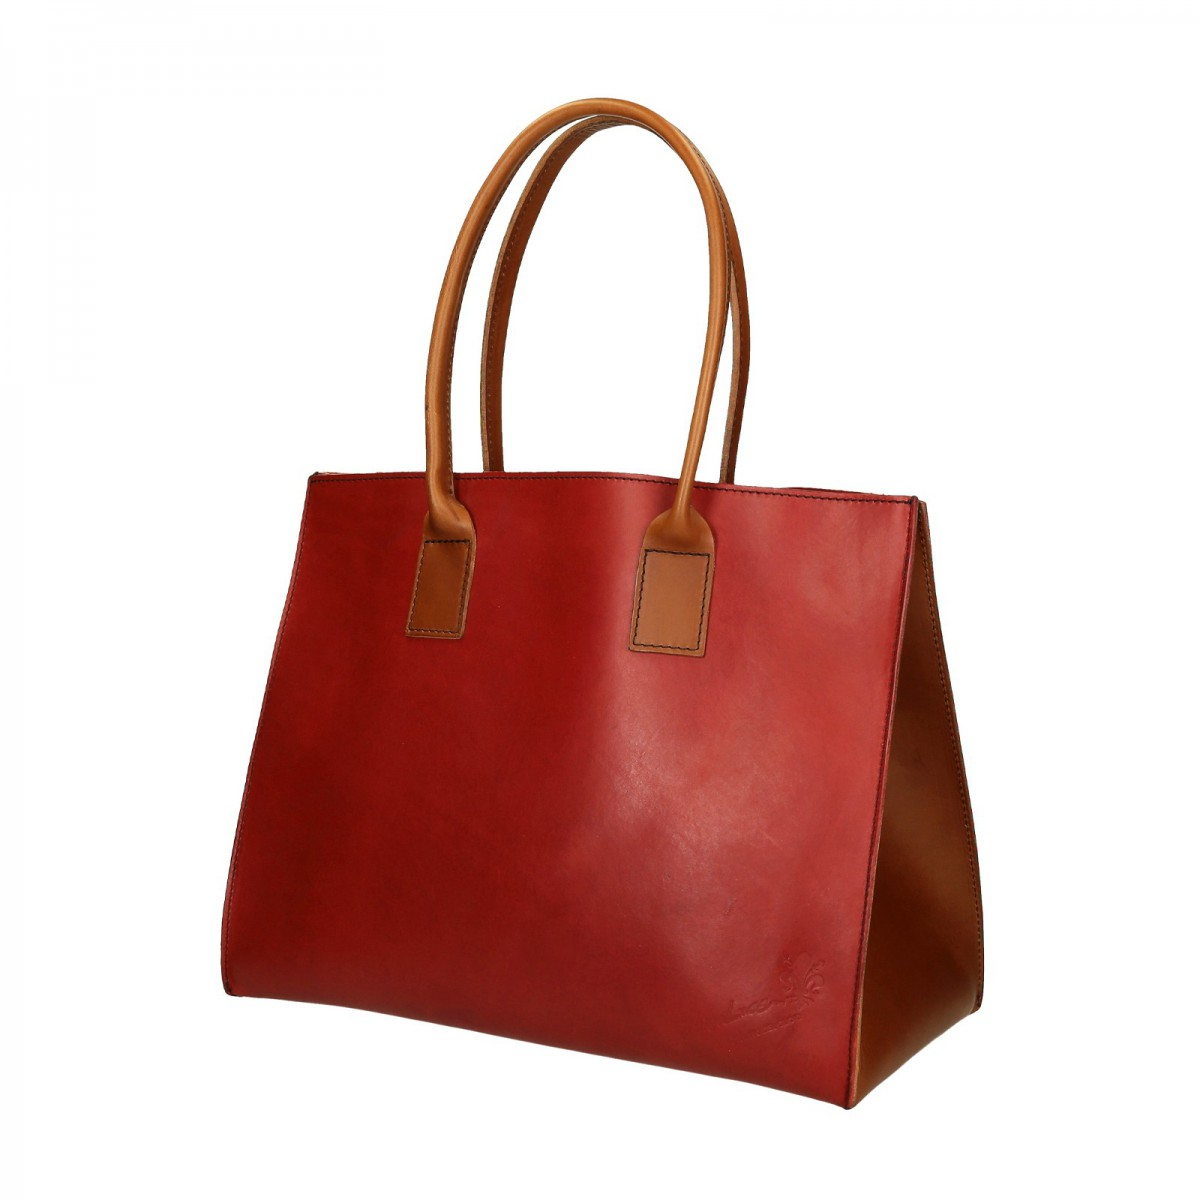 Two tone red tan leather tote bag for women Handmade ...